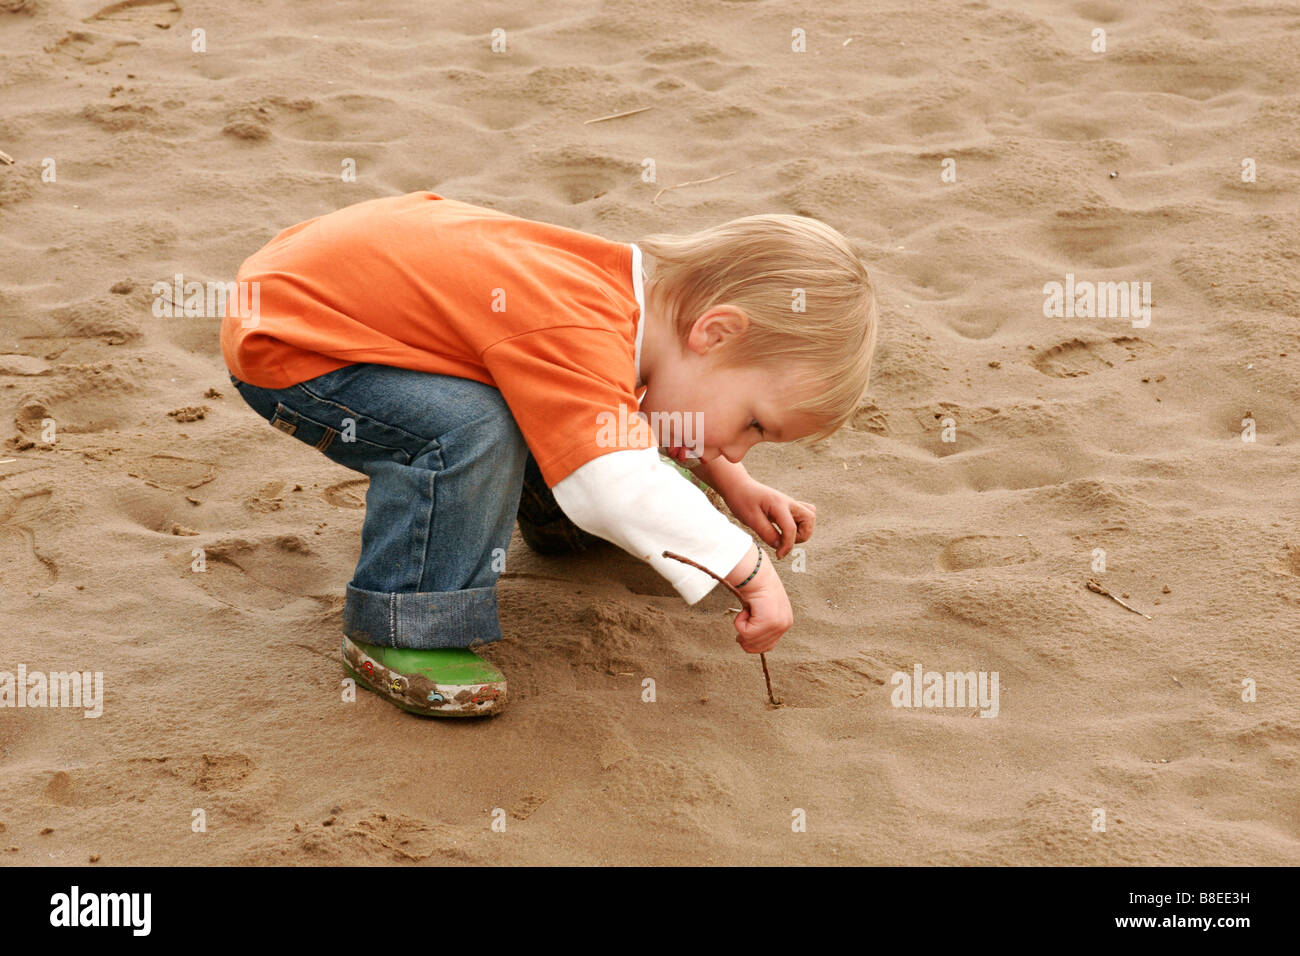 2 year old boy using a stick to draw in the sand at the beach - Stock Image